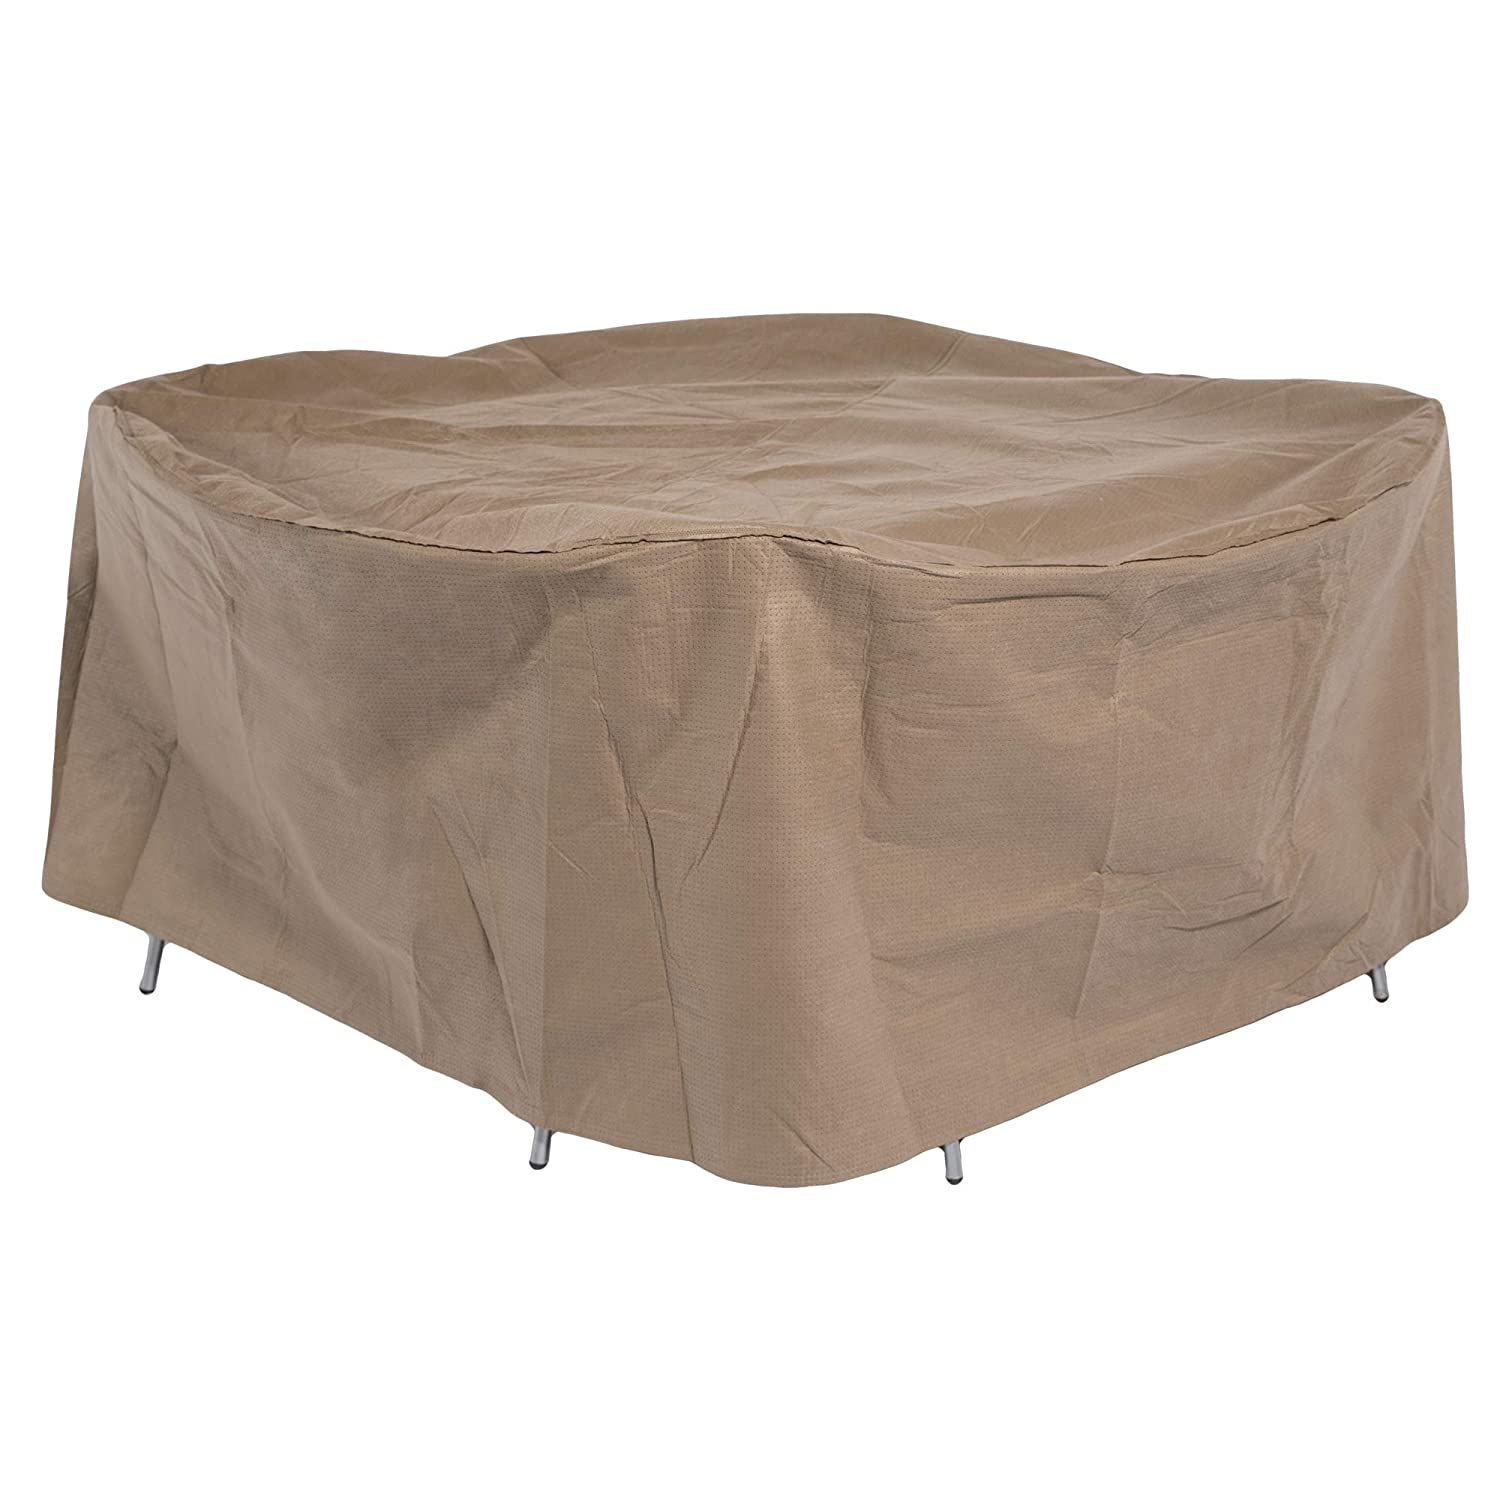 Duck Covers Essential Round Patio Table & Chair Set Cover, Fits Outdoor 108 Diameter ETR108108